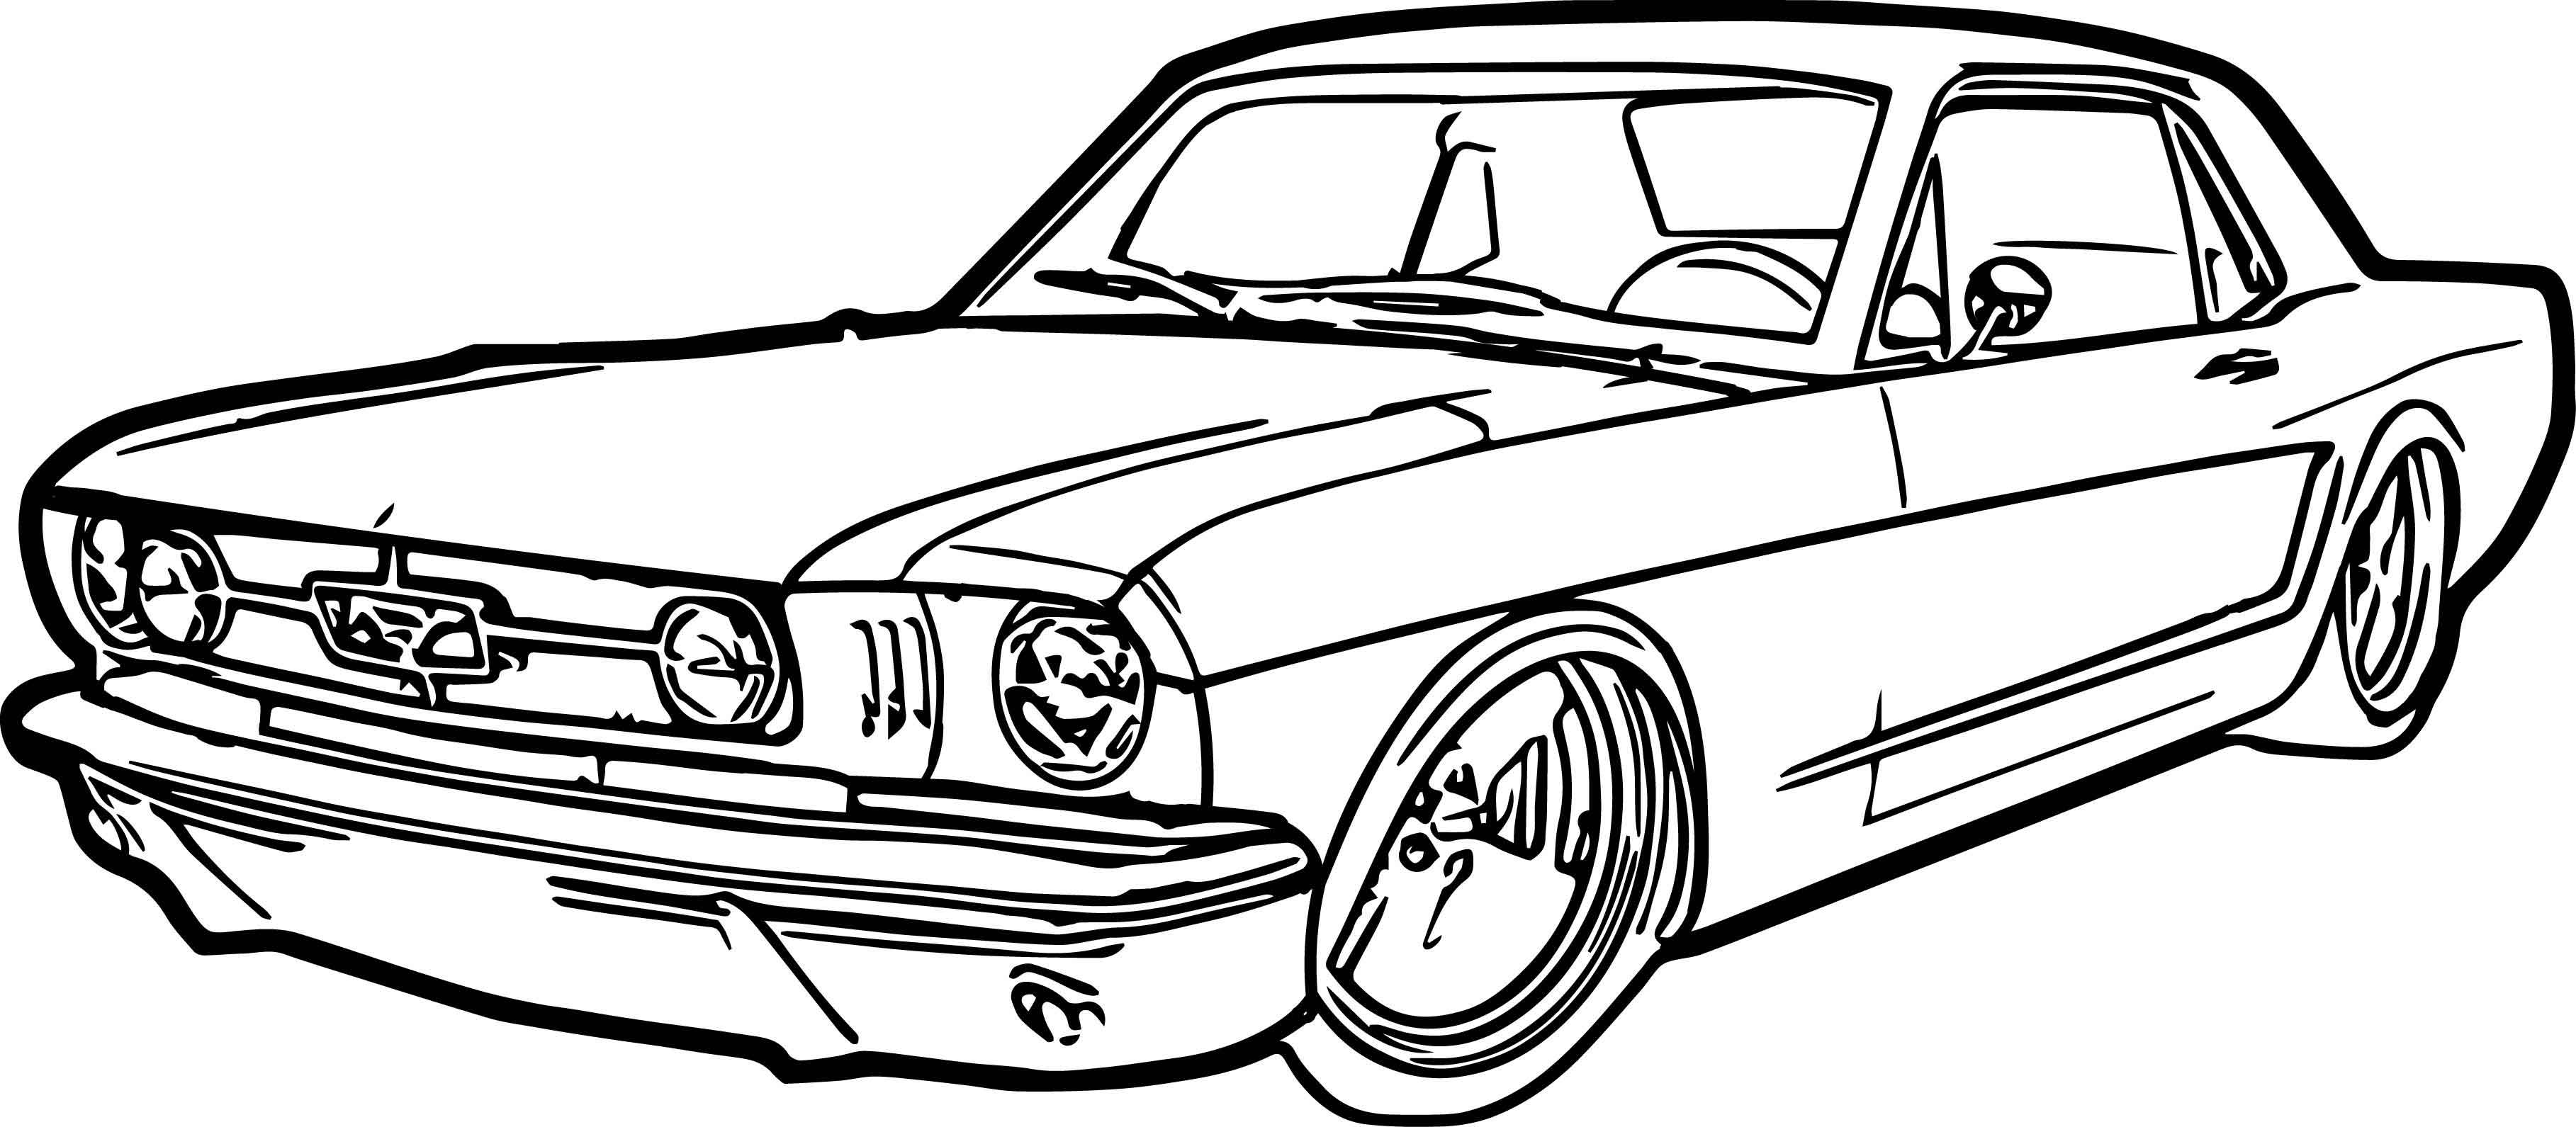 coloring pages of cool cars cool audi car a4 coloring page audi cars audi coloring cars coloring of pages cool